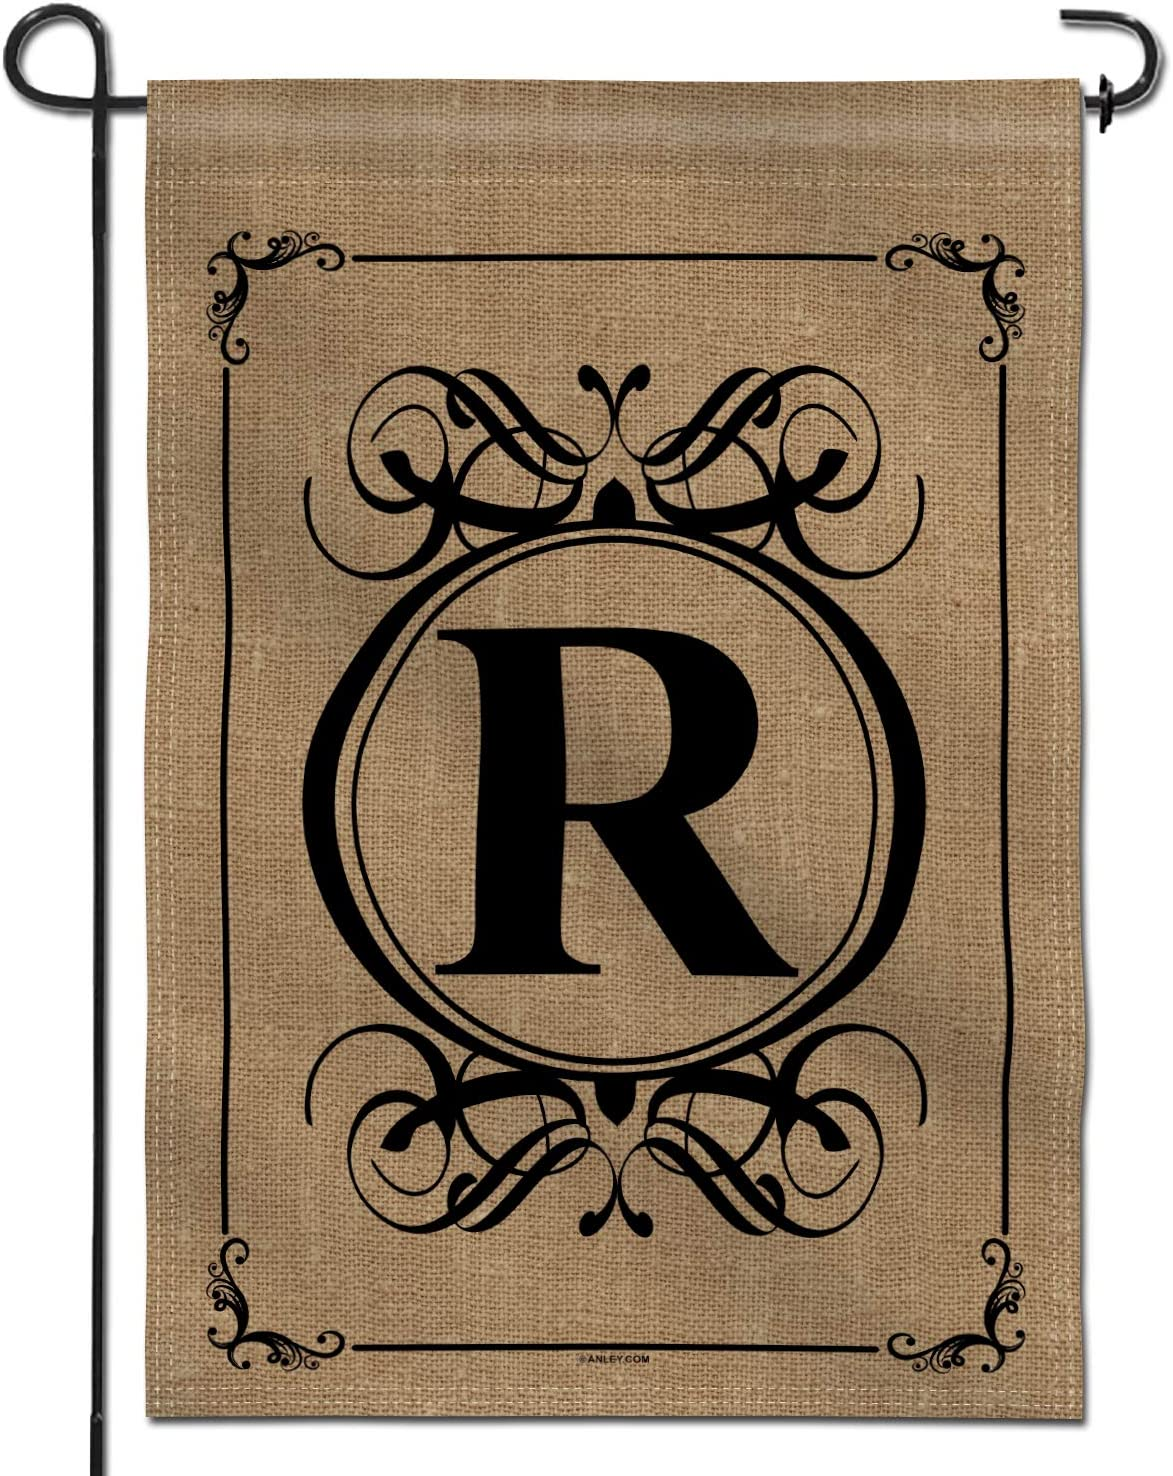 Anley Classic Monogram Letter R Garden Flag, Double Sided Family Last Name Initial Yard Flags - Personalized Welcome Home Decor - Weather Resistant & Double Stitched - 18 x 12.5 Inch